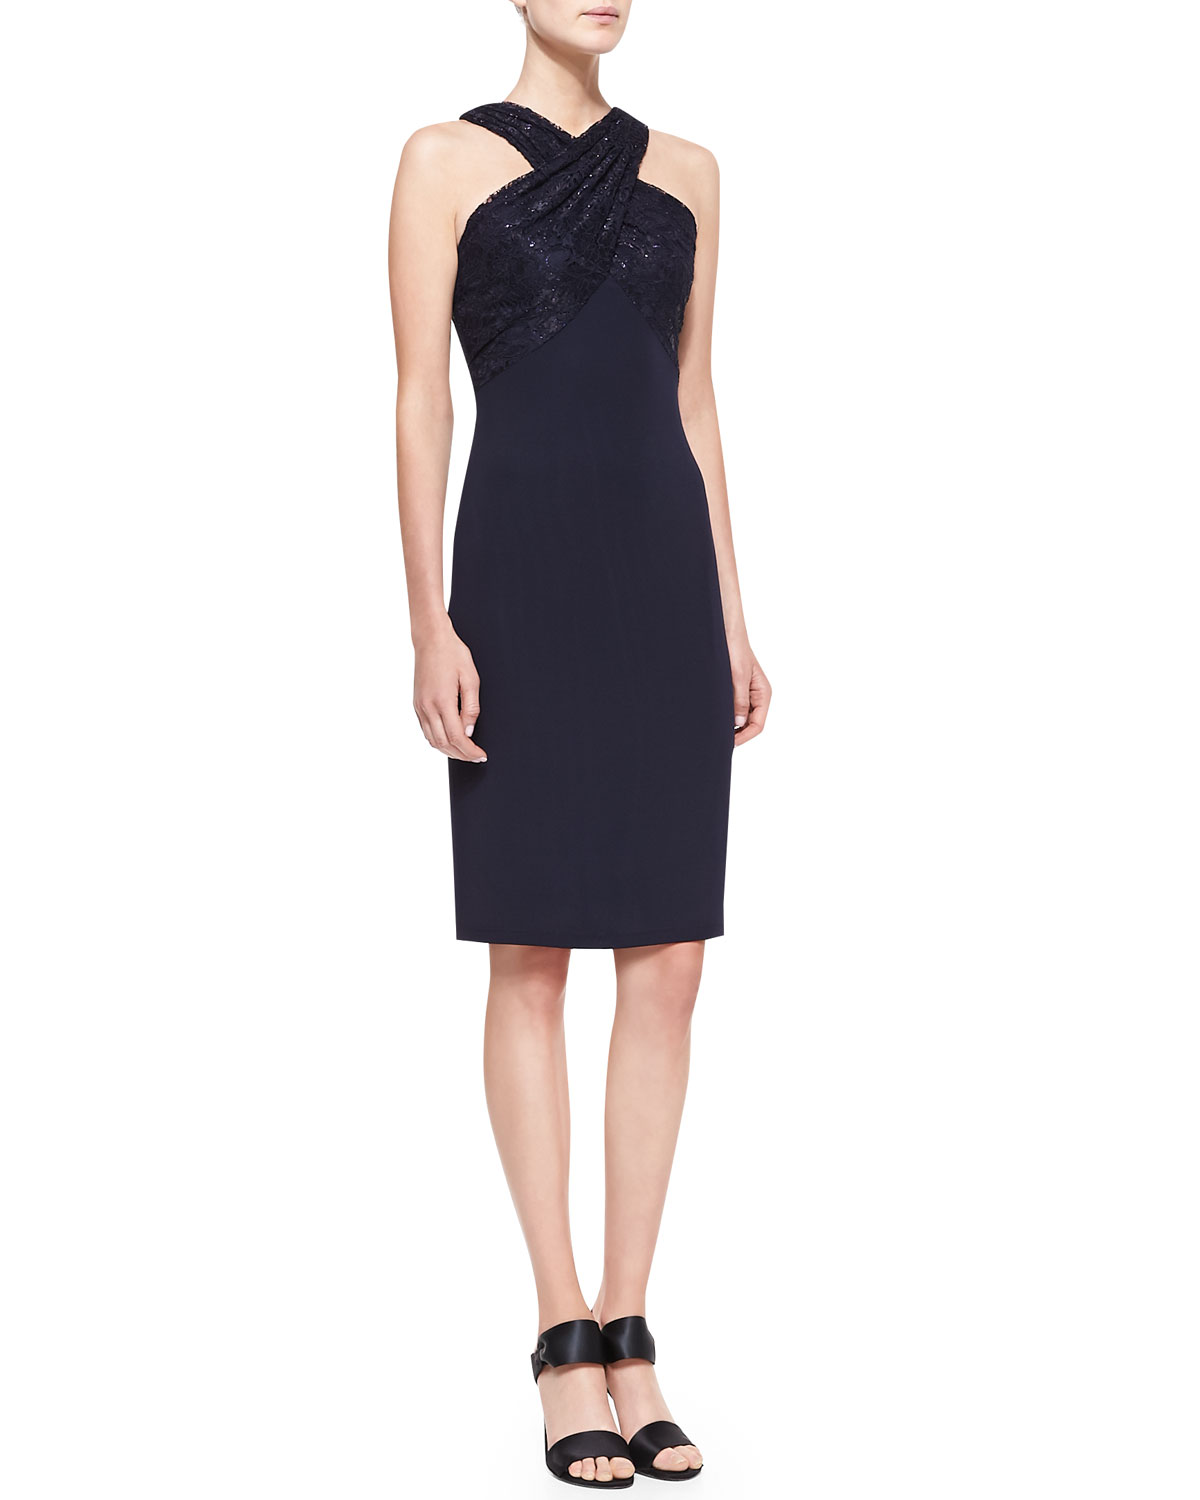 Womens Lace Strap Halter Cocktail Dress, Navy   David Meister   Navy (10)